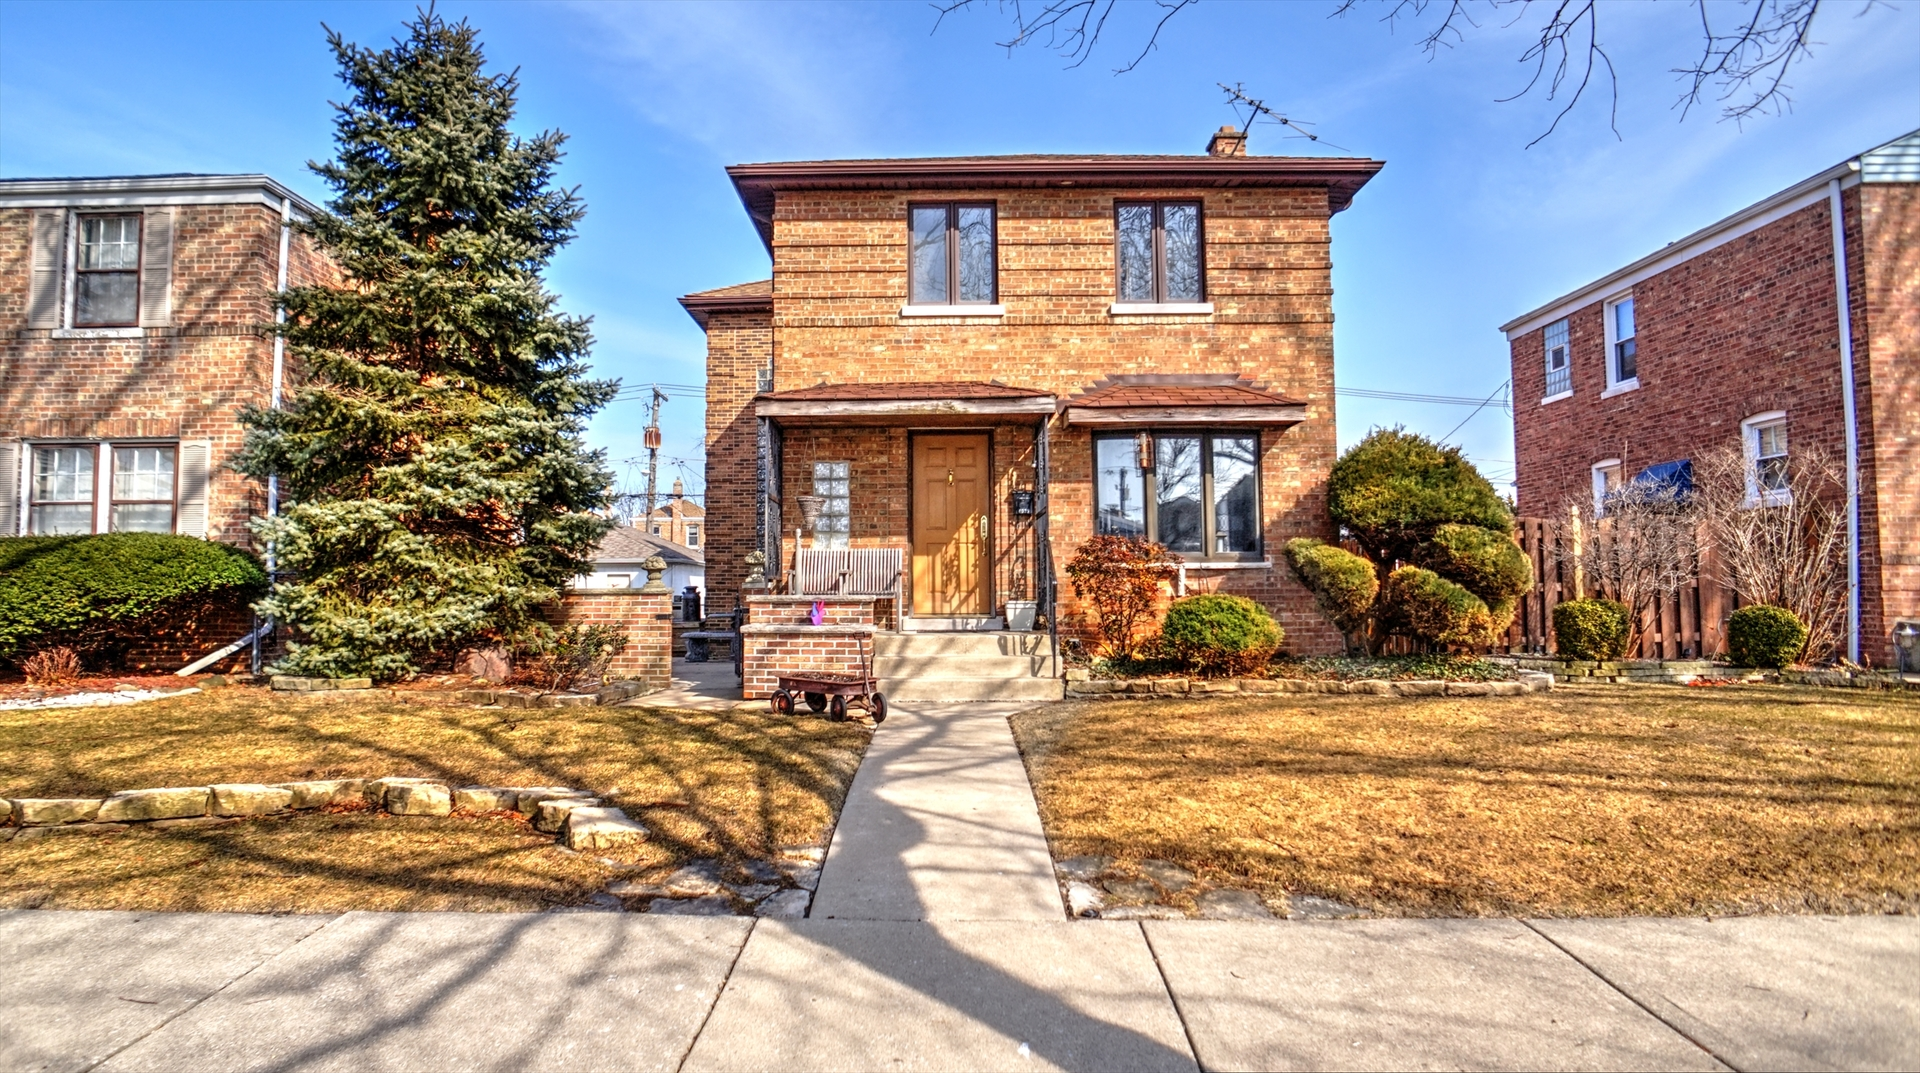 5900 West 60th Street, Chicago IL 60638 - House for Sale in Chicago